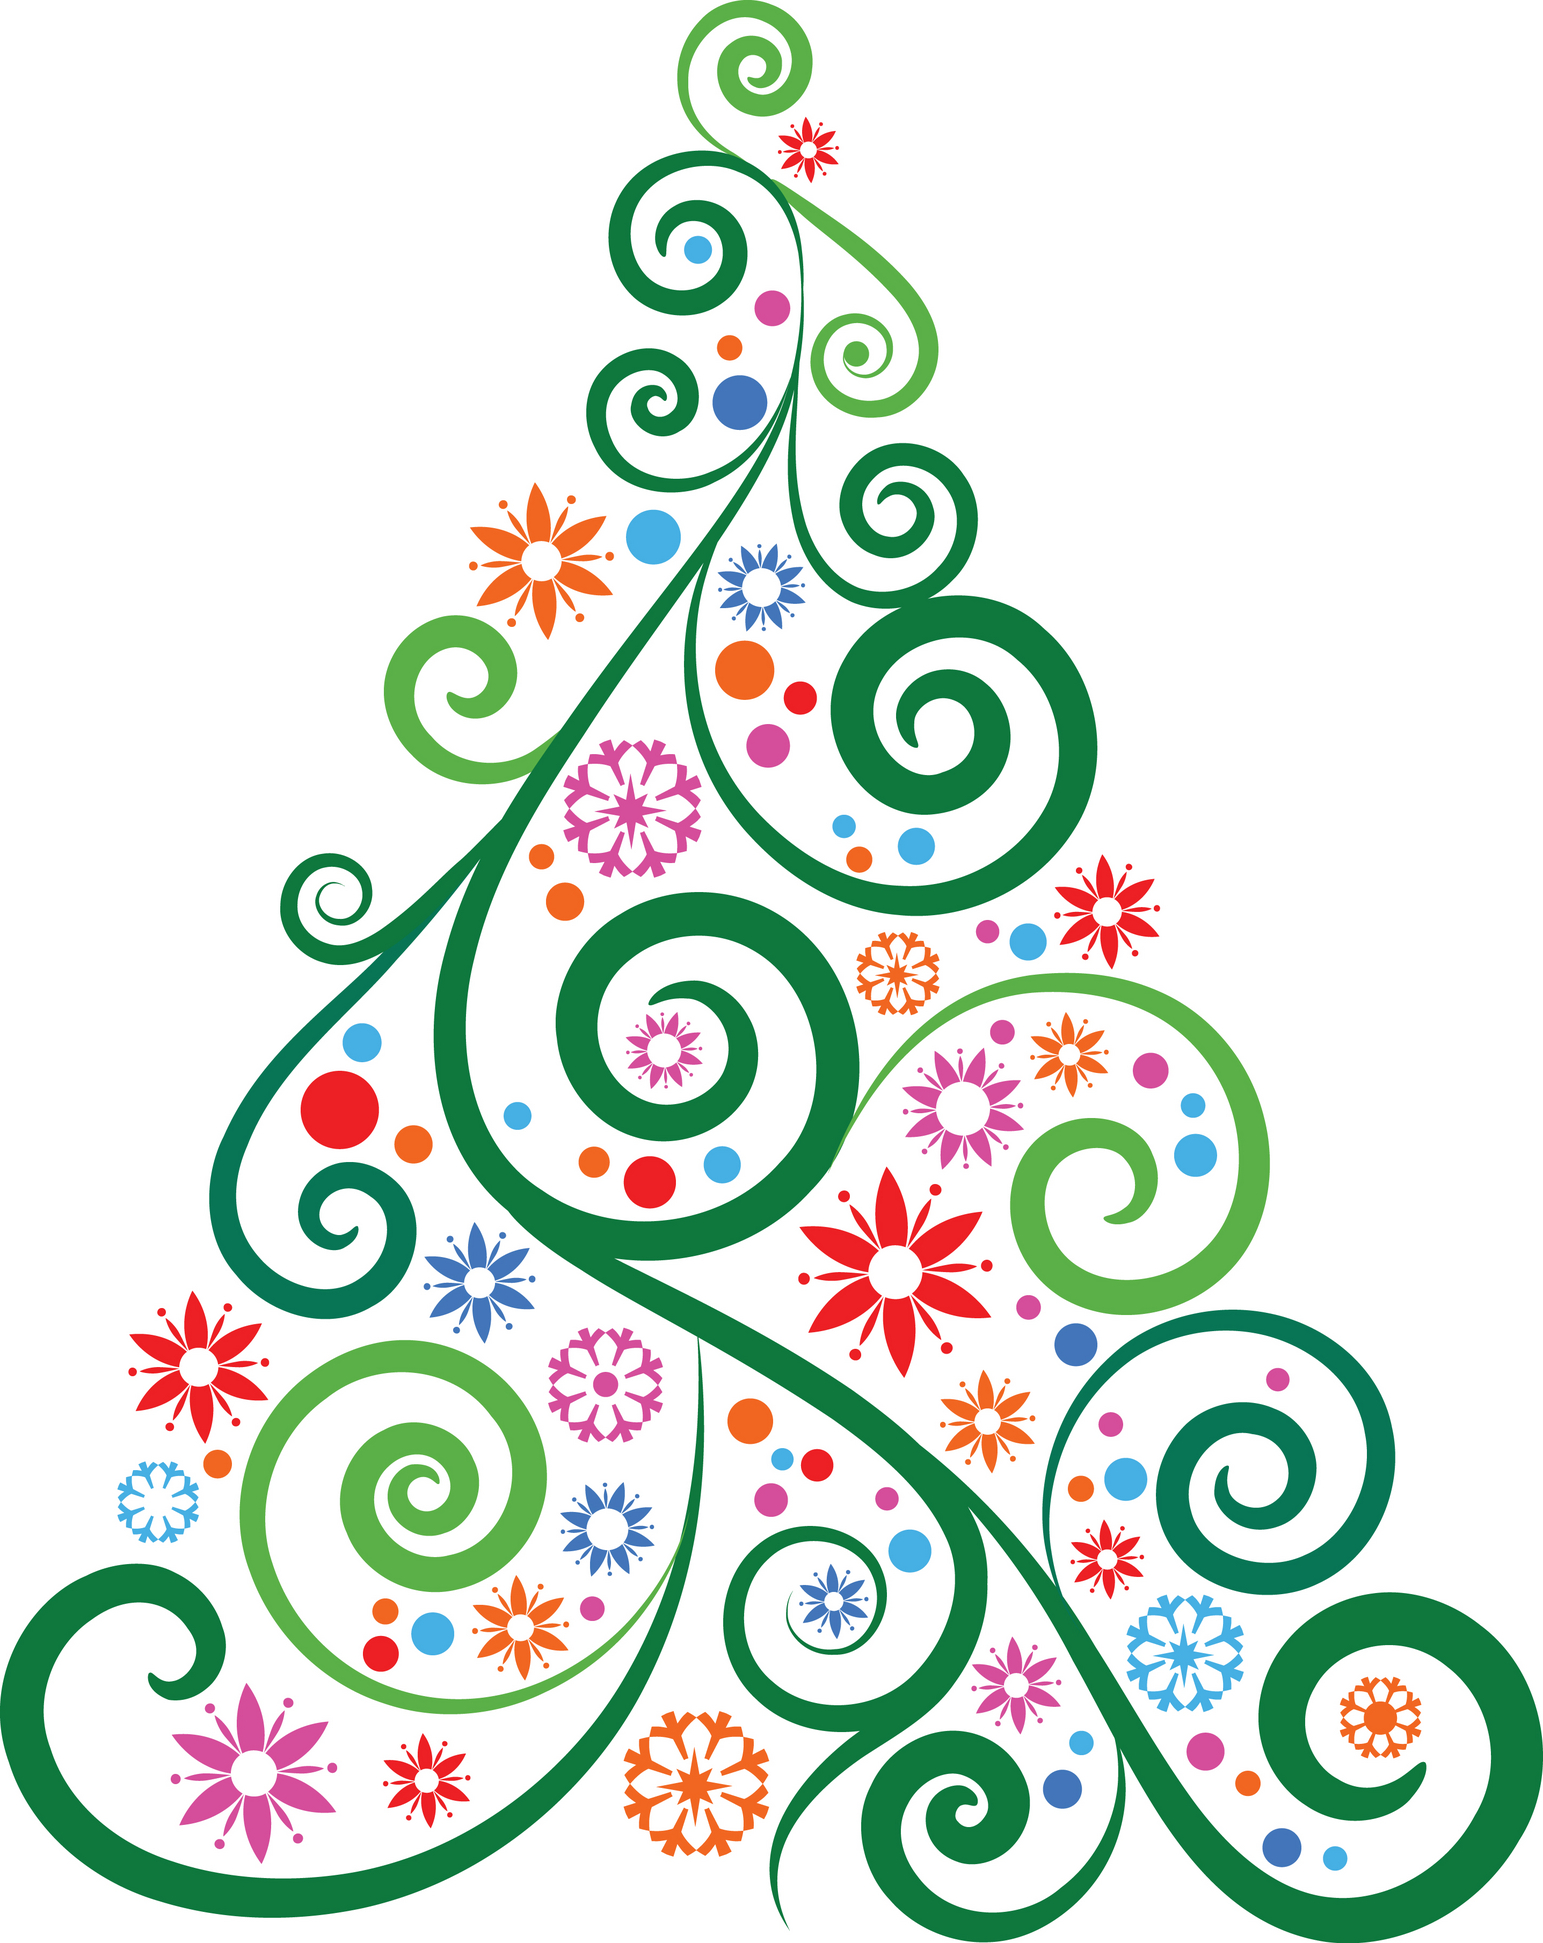 Xmas cliparts picture download Xmas cliparts picture download